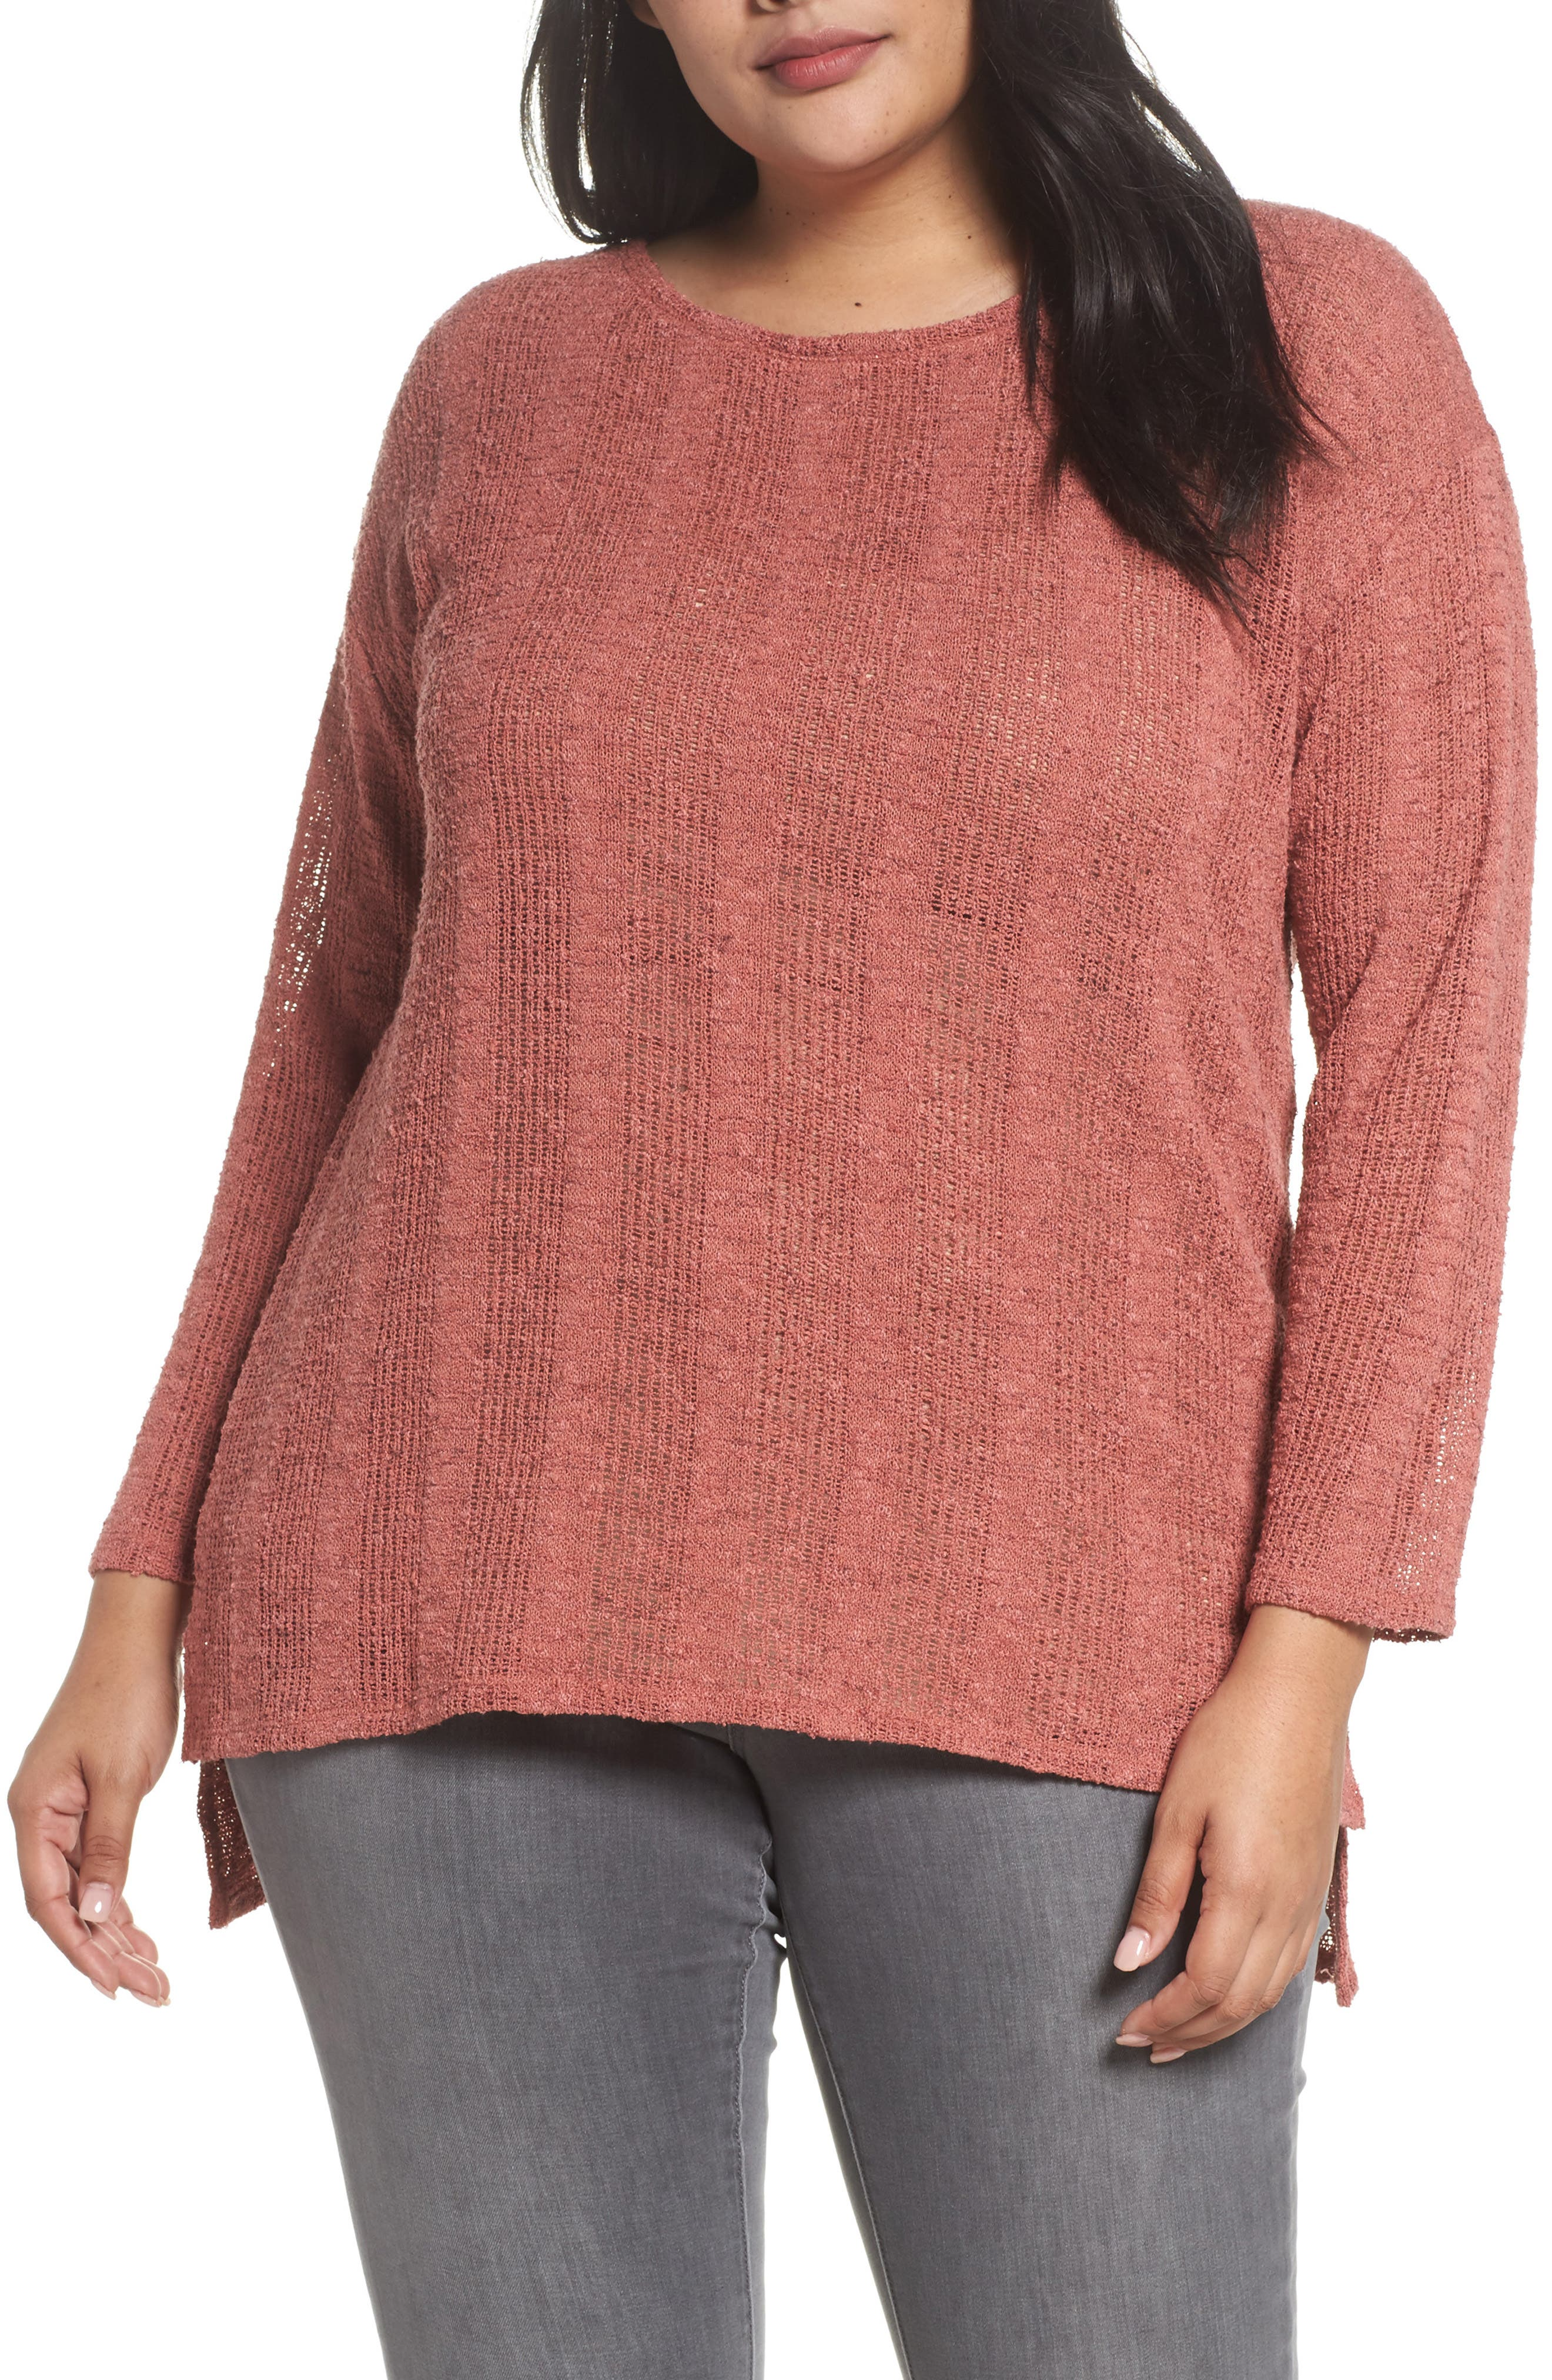 Main Image - Two by Vince Camuto Drop Needle Sweater (Plus Size)